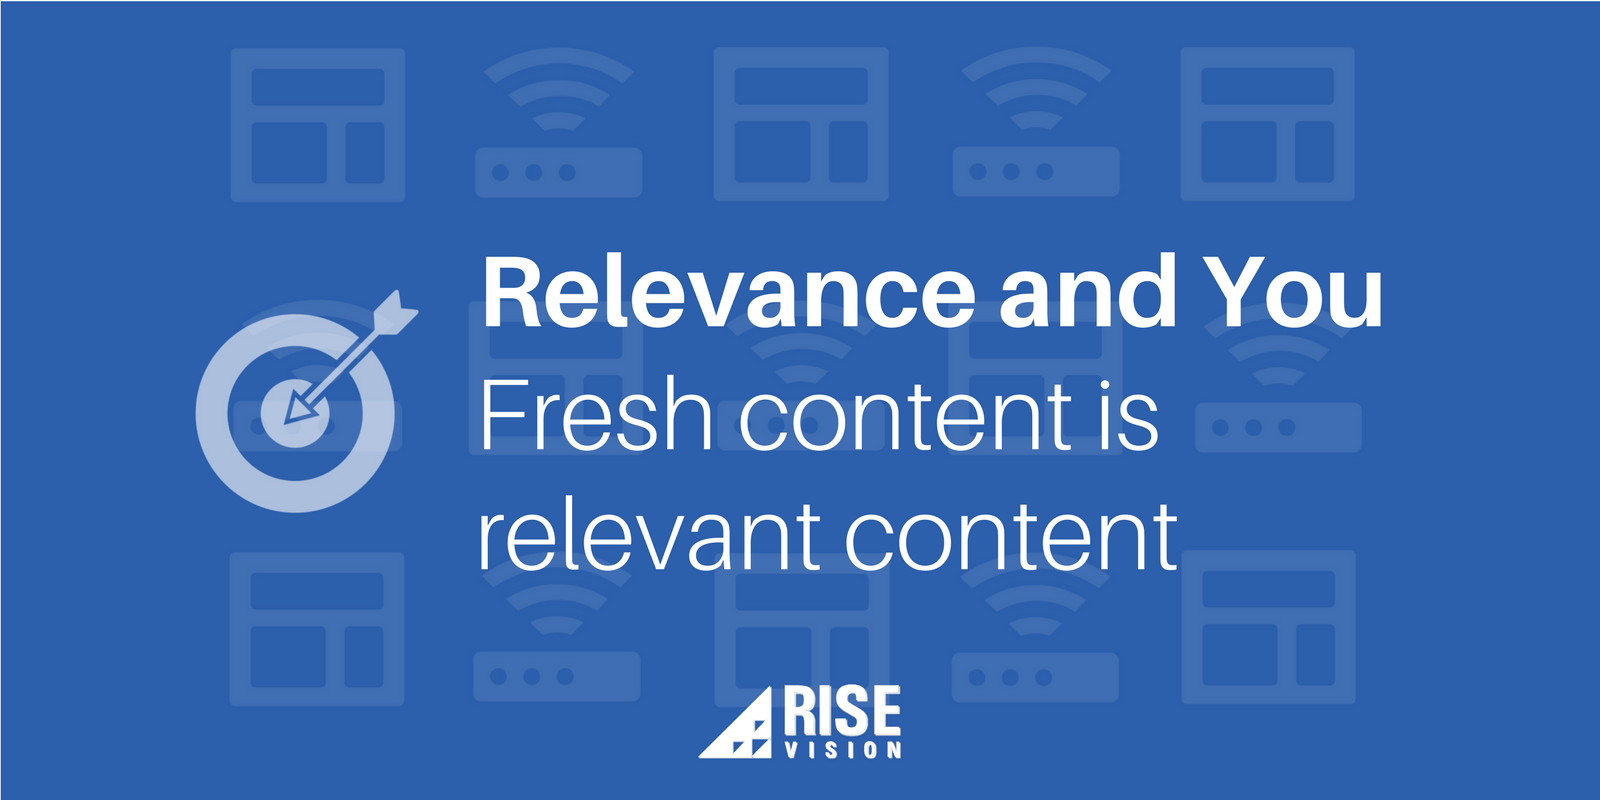 Rise Vision Digital Signage Content Relevance.png